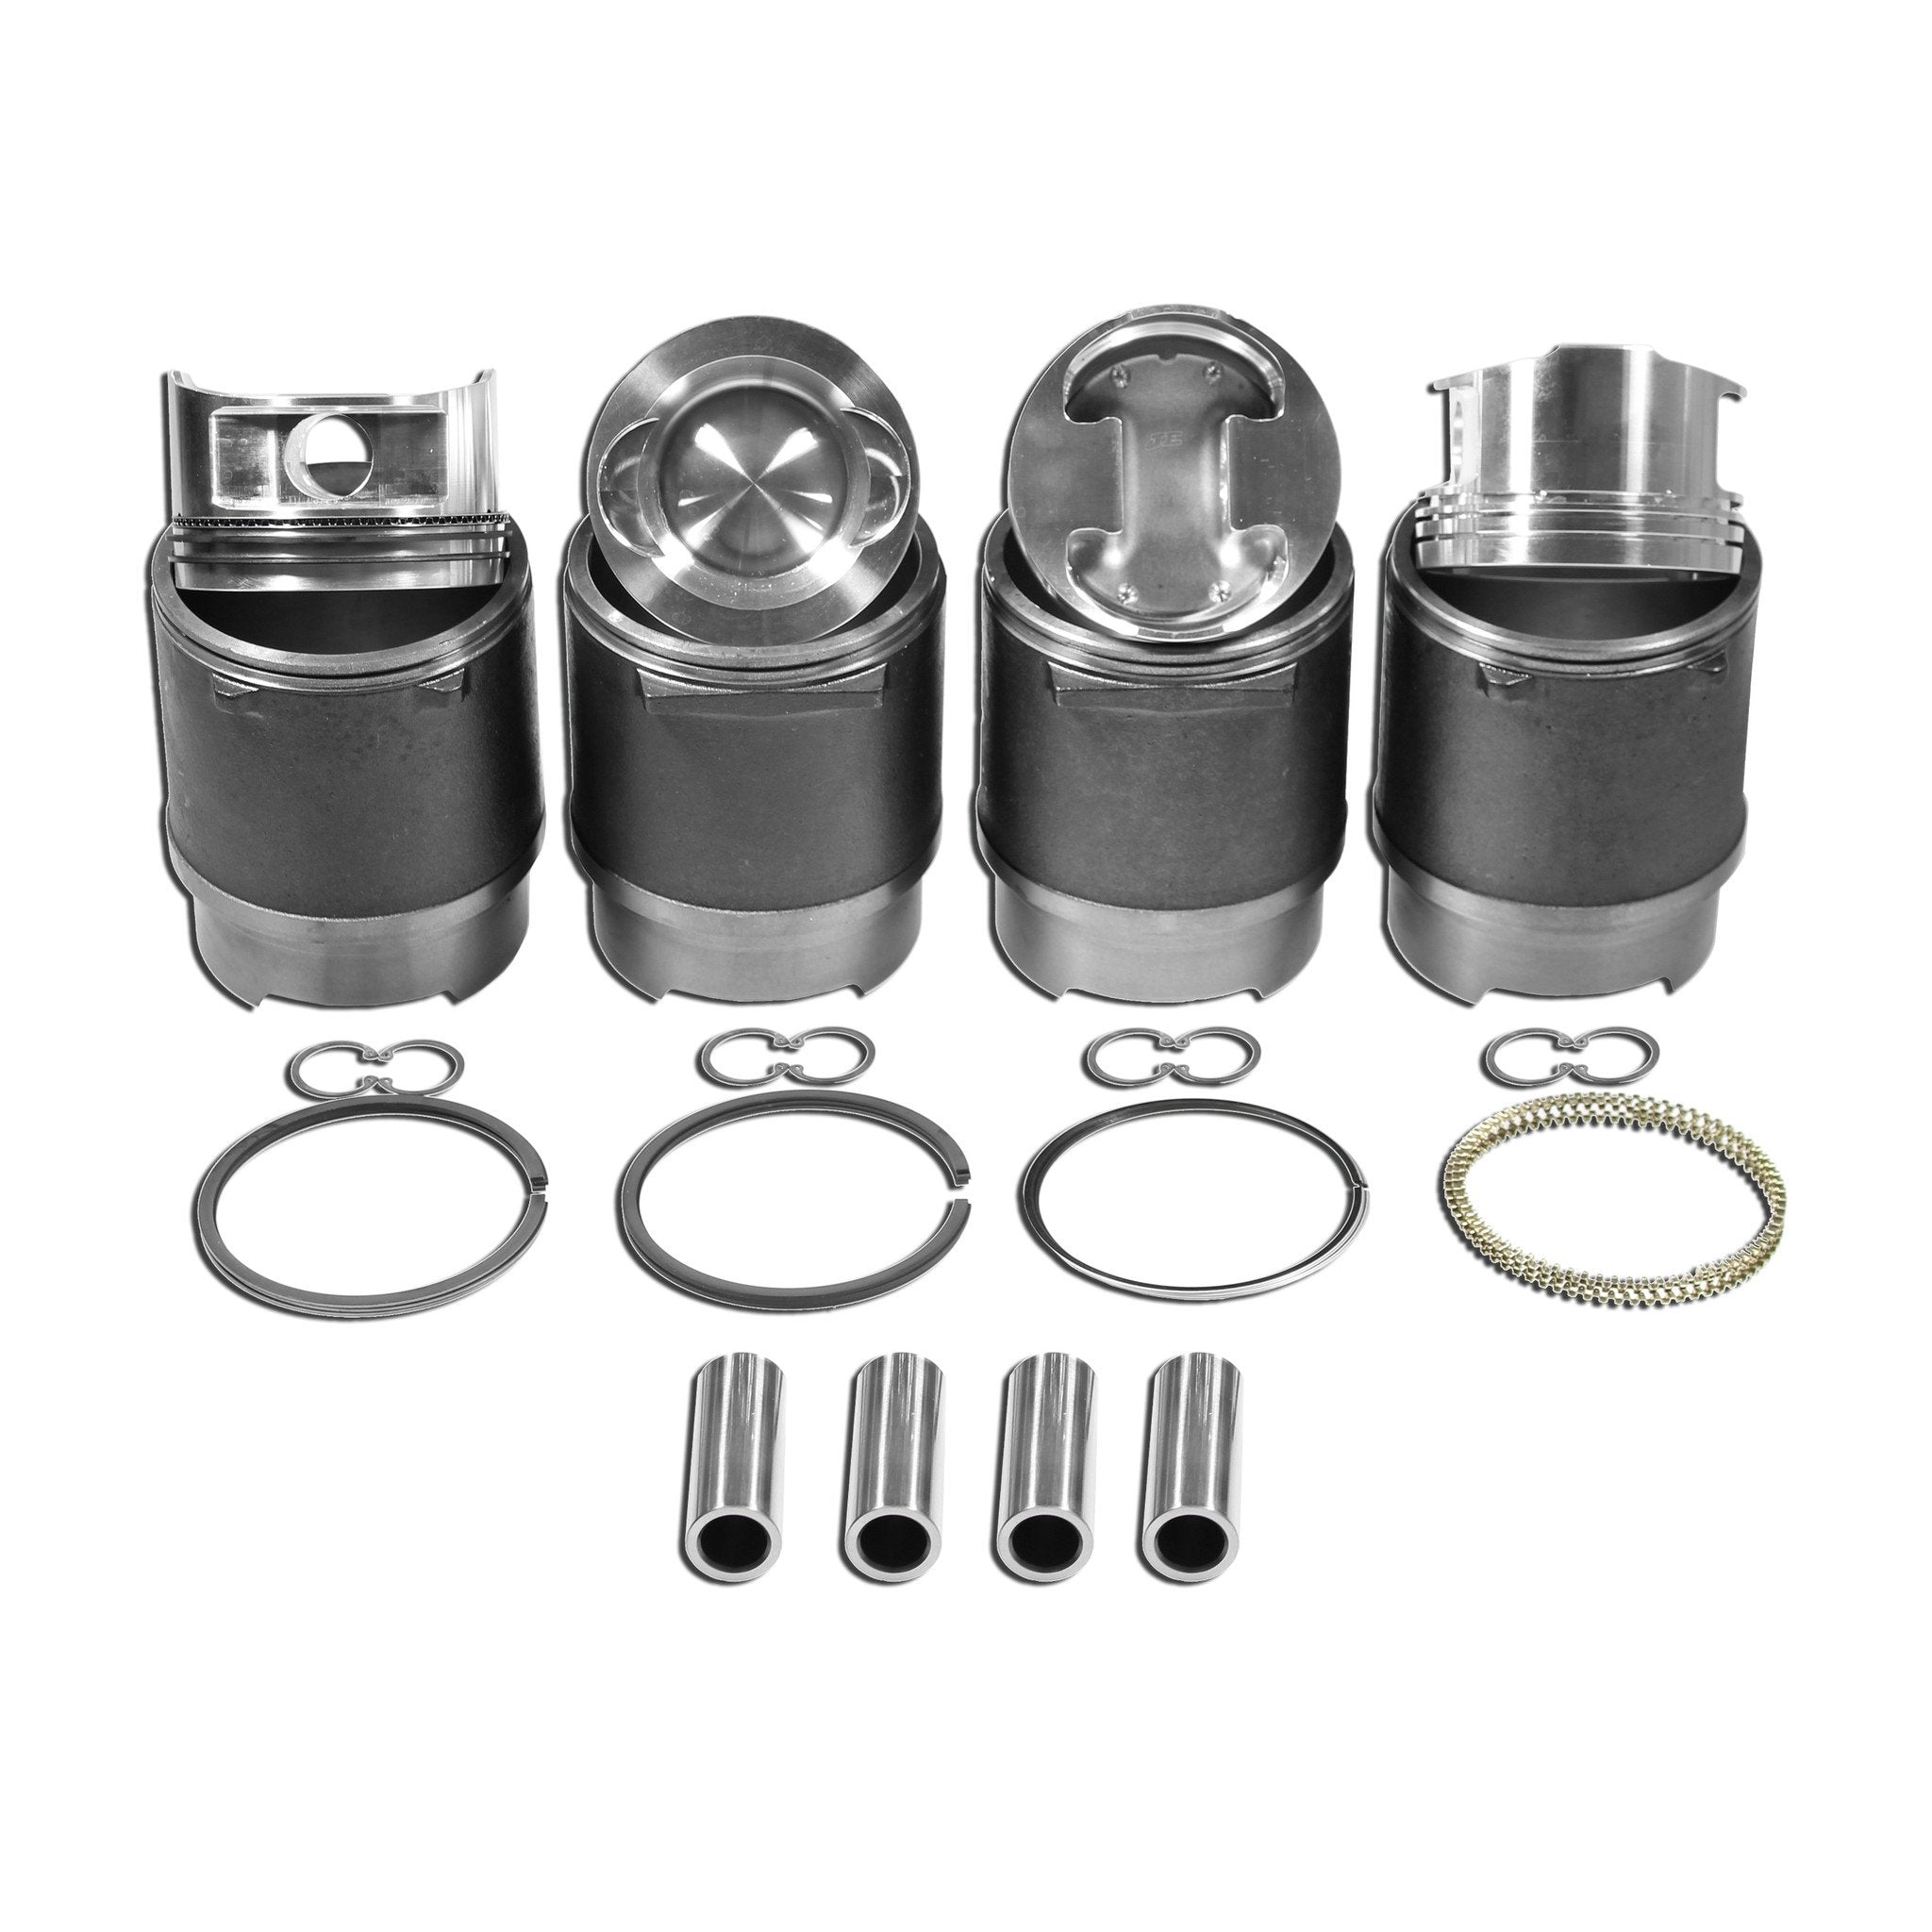 VW 94mm JE Forged WaterBoxer Kit 2 1L - LJ Air-Cooled Engines